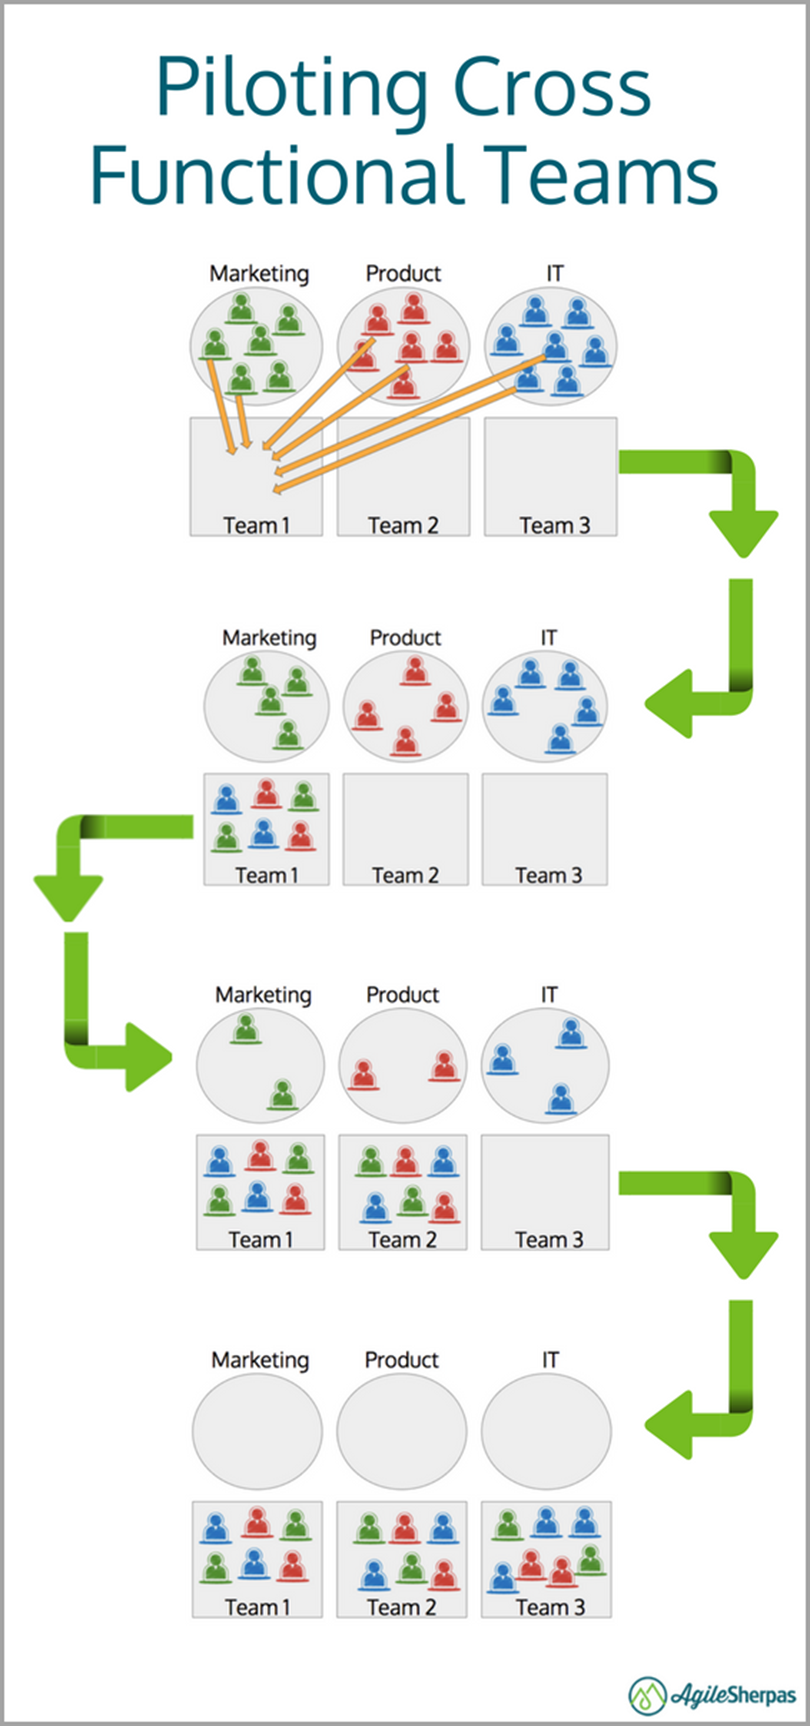 Piloting Cross Functional Teams for agile marketing mistakes